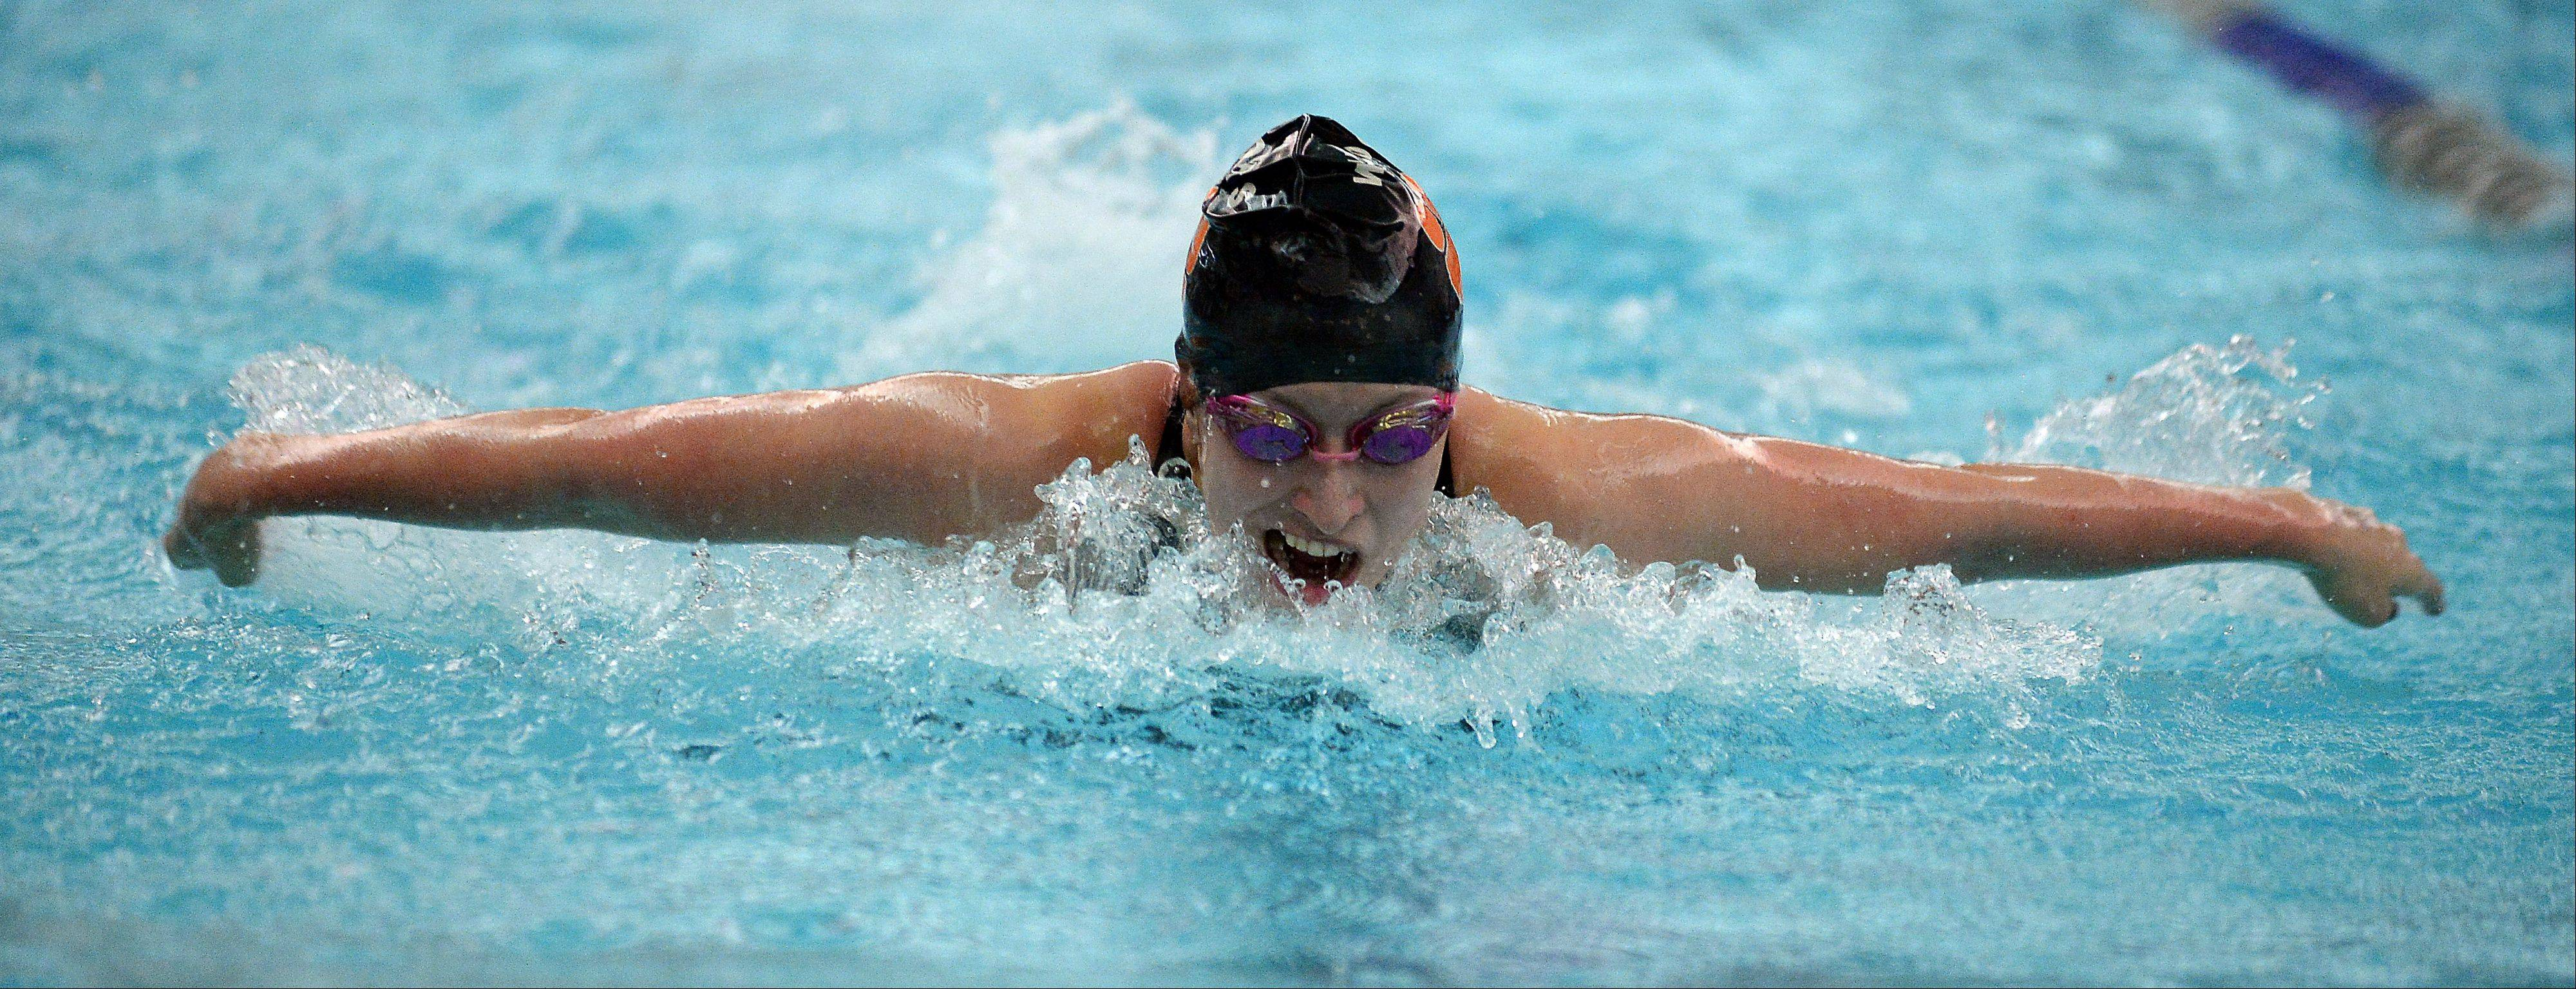 Libertyville's Staci Herchenbach powers ahead in the girls 100-yard butterfly in the girls swimming sectional at Vernon Hills High School on Saturday.